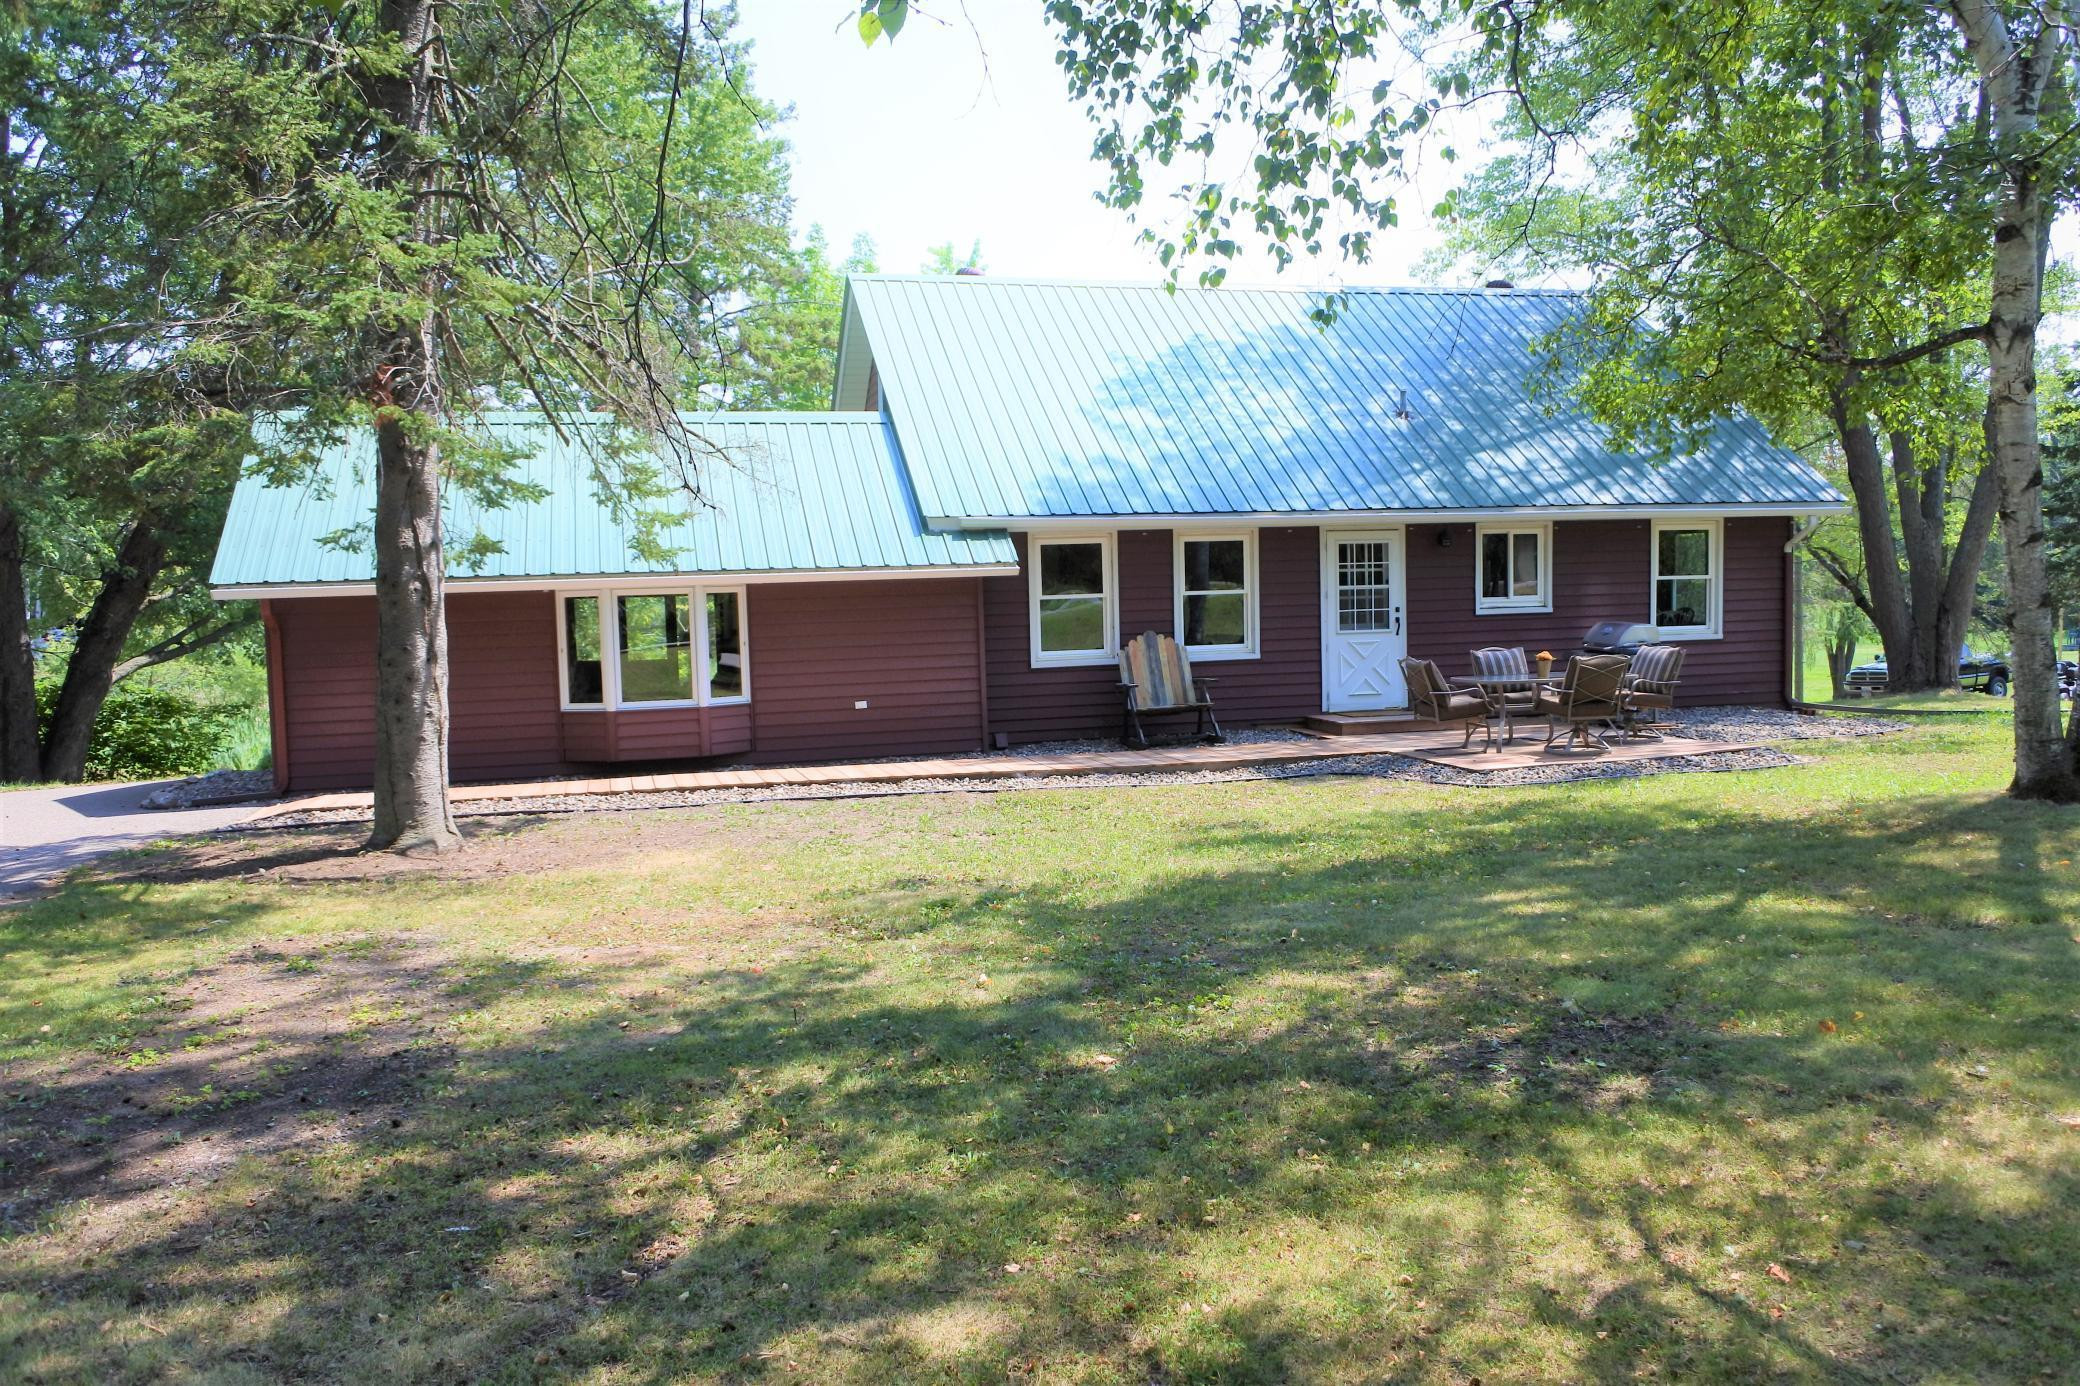 34480 US Highway 169, Aitkin, MN 56431